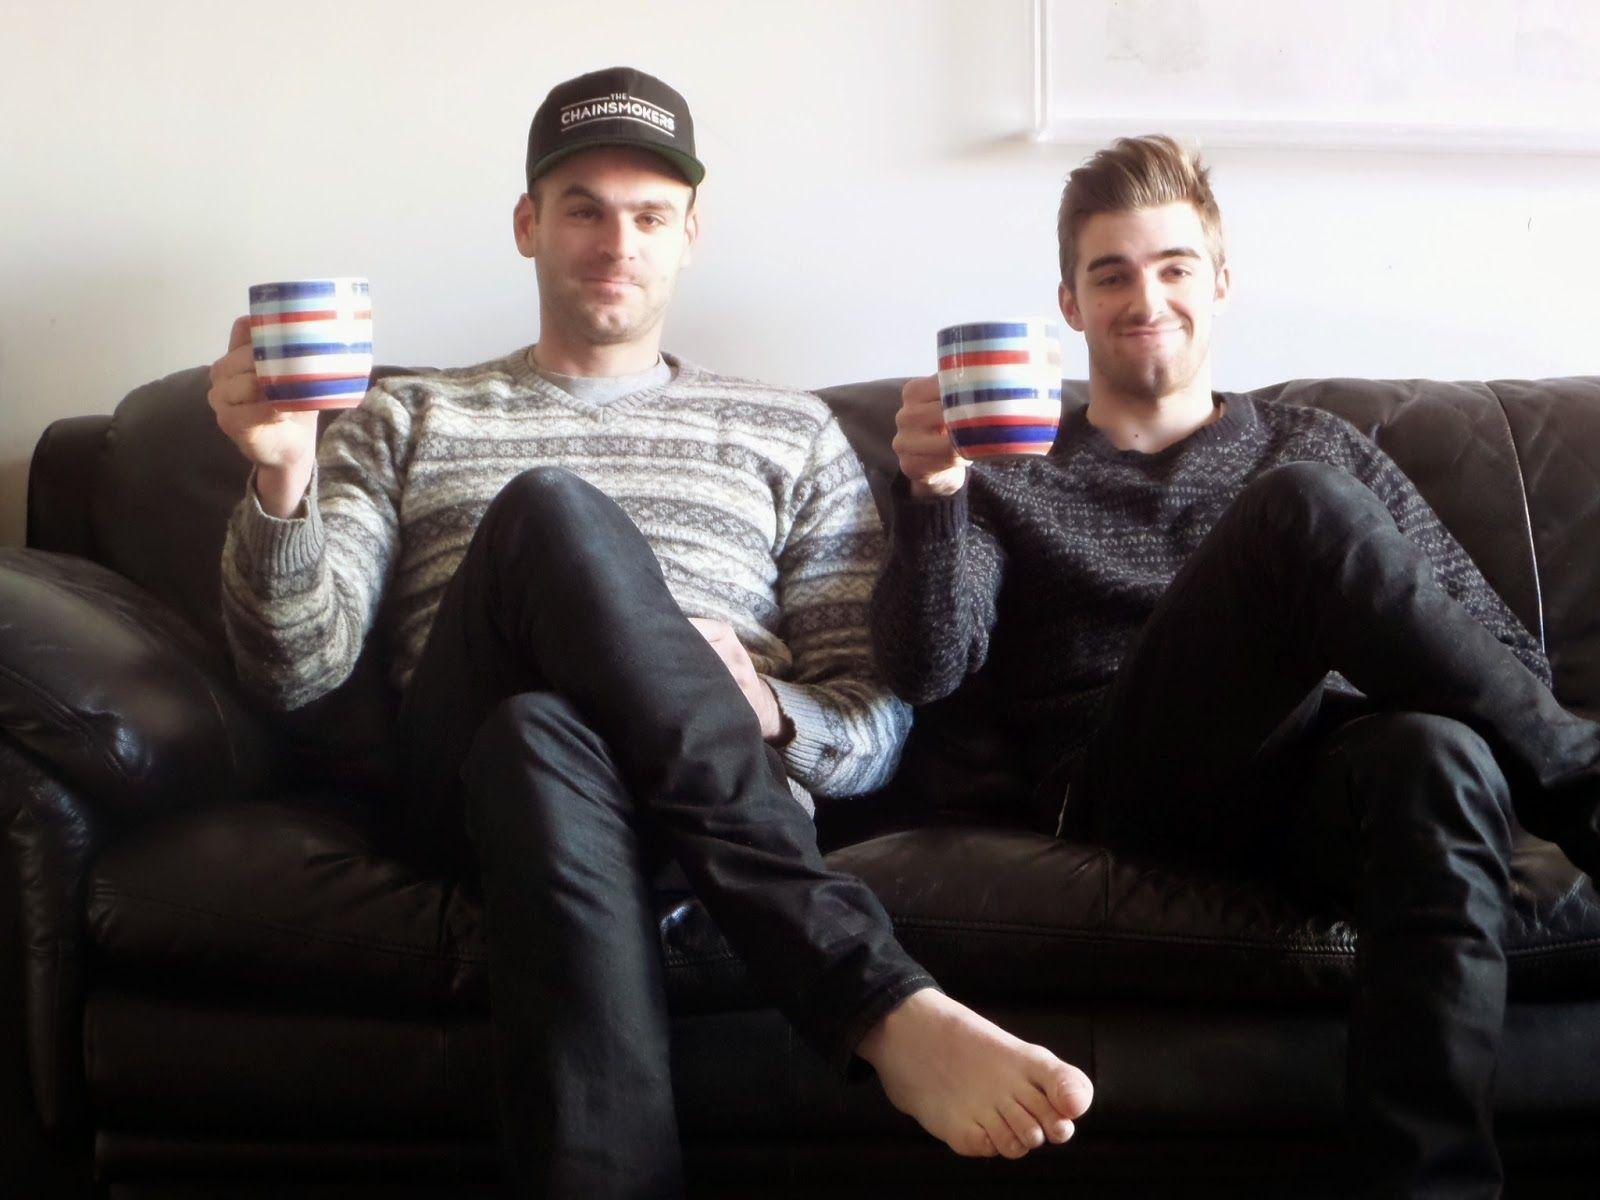 The Chainsmokers Wallpapers HD Collection For Free Download